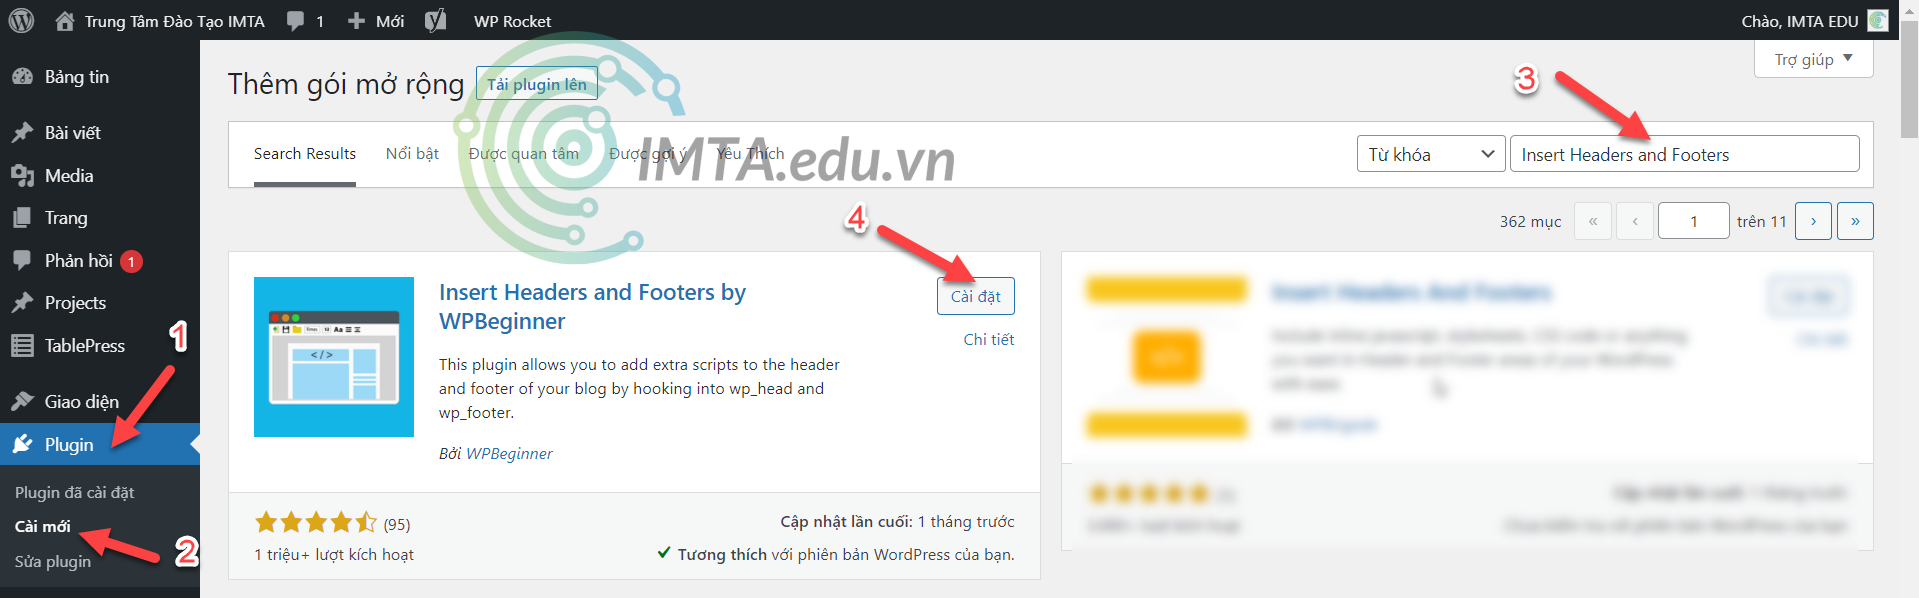 Cài đặt plugin Insert Headers and Footers by WPBeginner